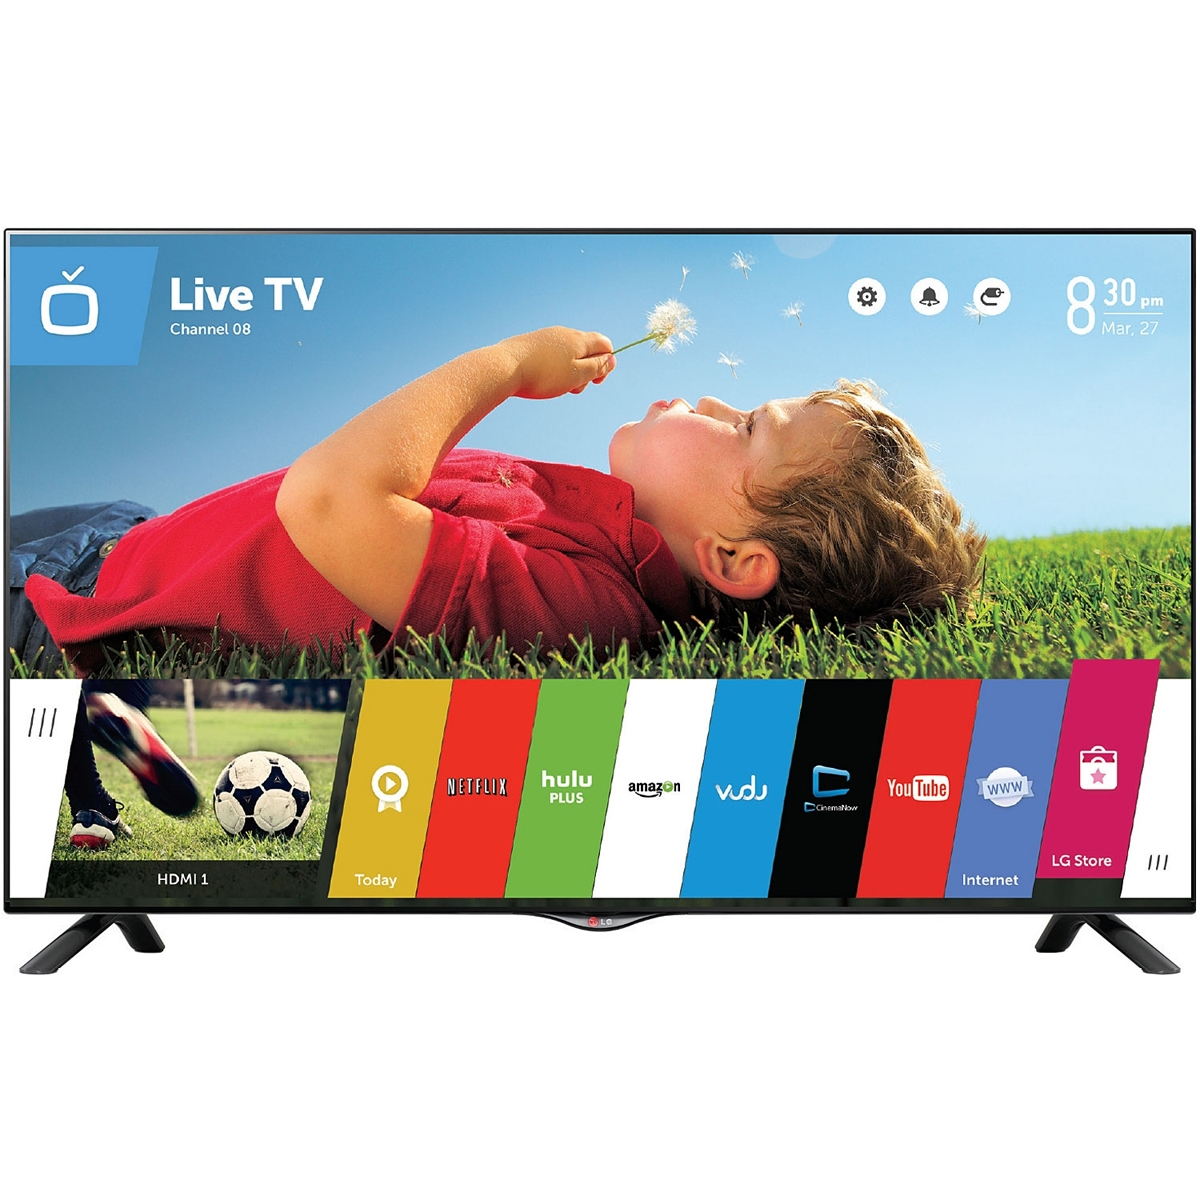 LG 60inch 8200 Series LED 4K Ultra HDTV - 60UB8200